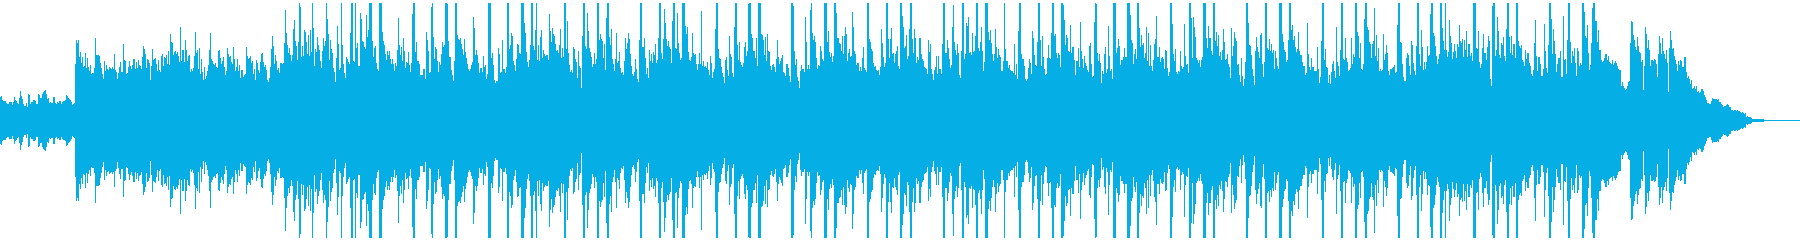 Once the day has ...'s reproduced waveform